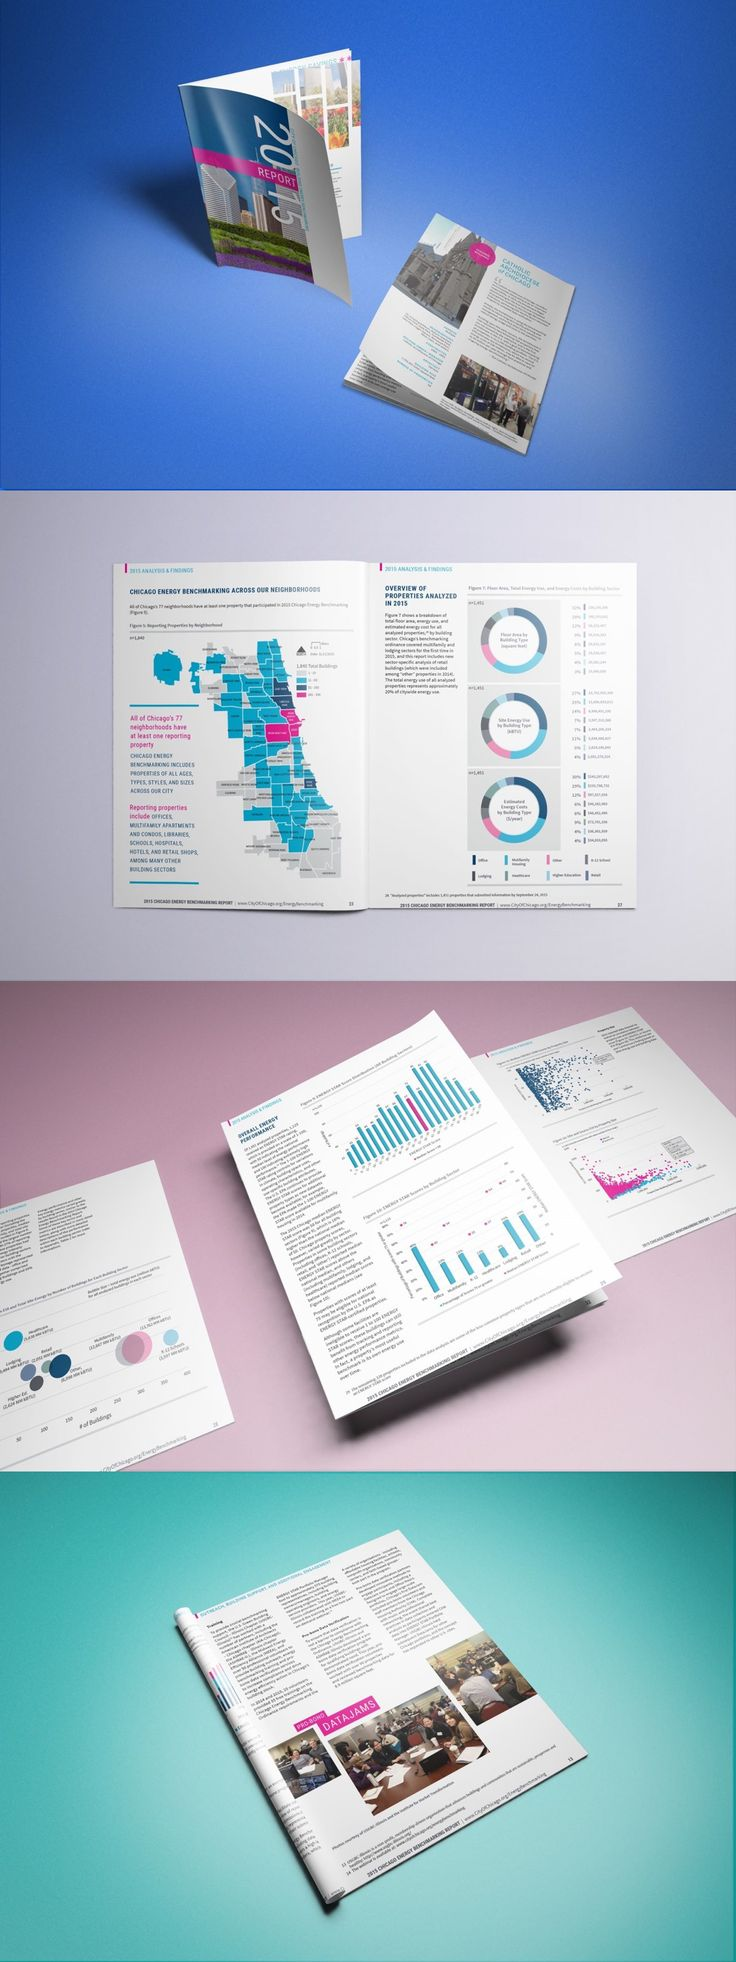 Monday Loves You partnered with the City of Chicago to create their 2015 Annual Benchmarking report.  #ReportDesign #DesignInspiration